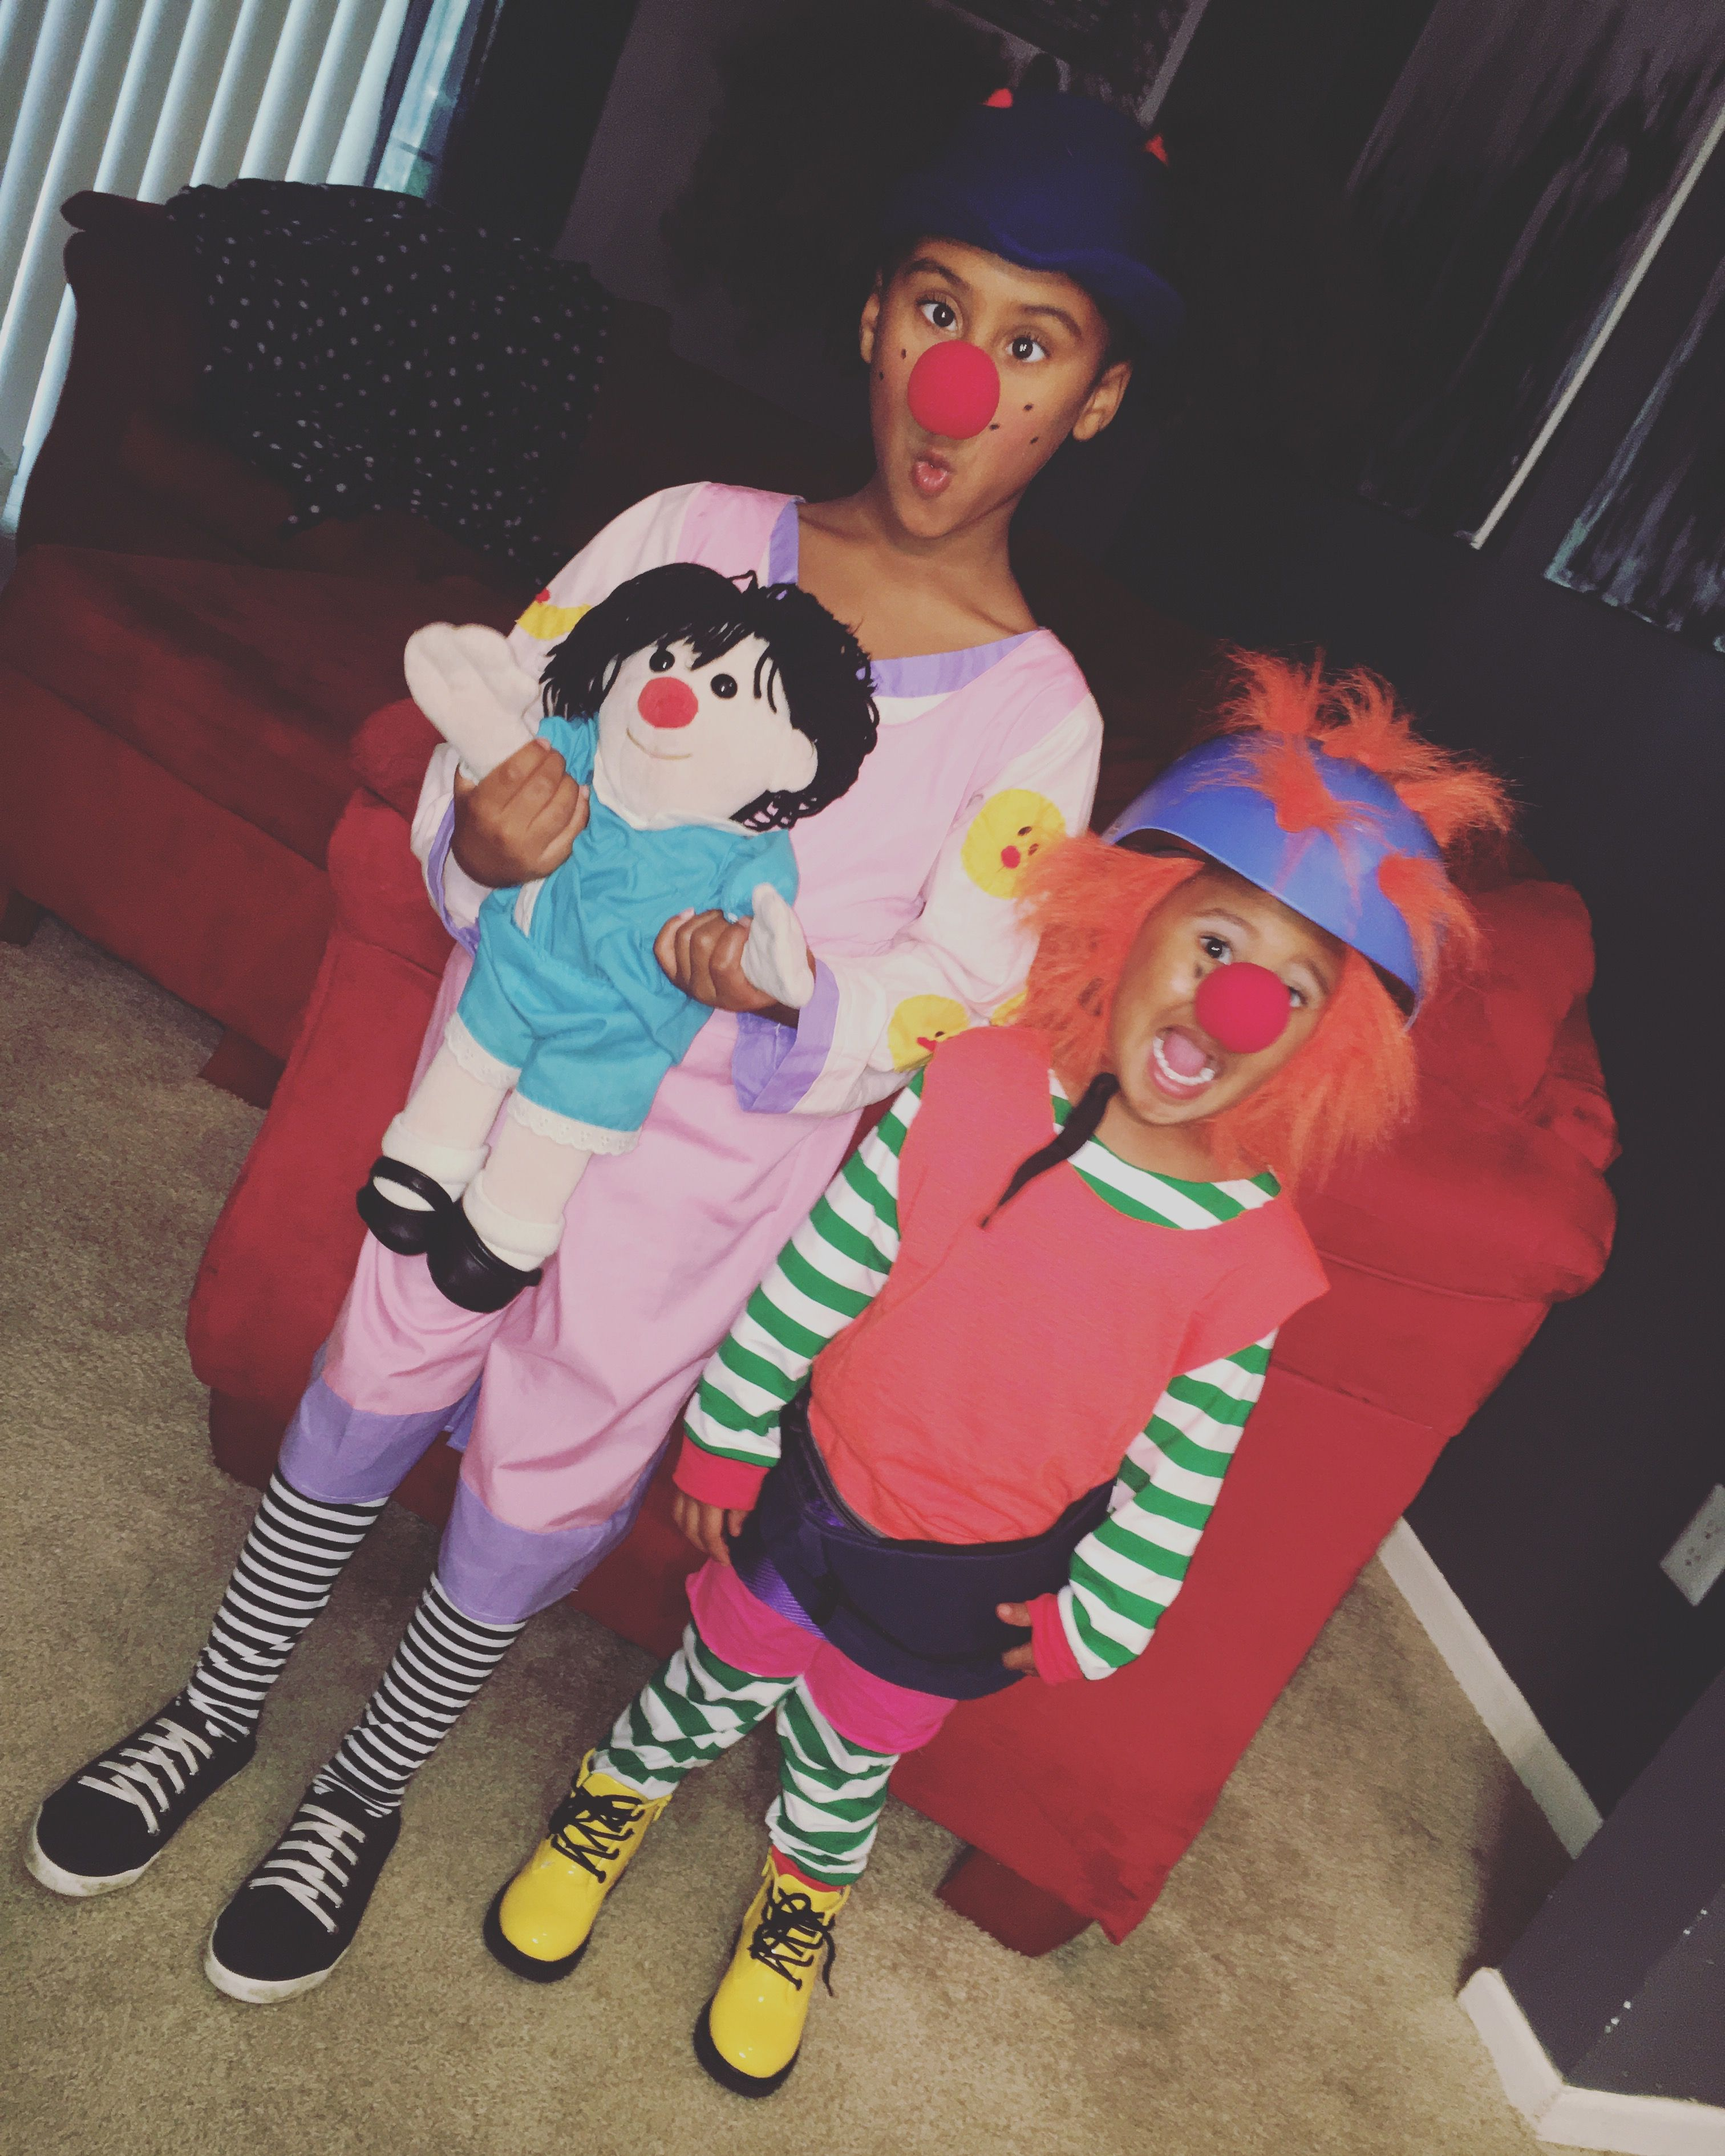 Big Couch Clown Loonette The Clown And Major Bedhead Diy Costumes The Big